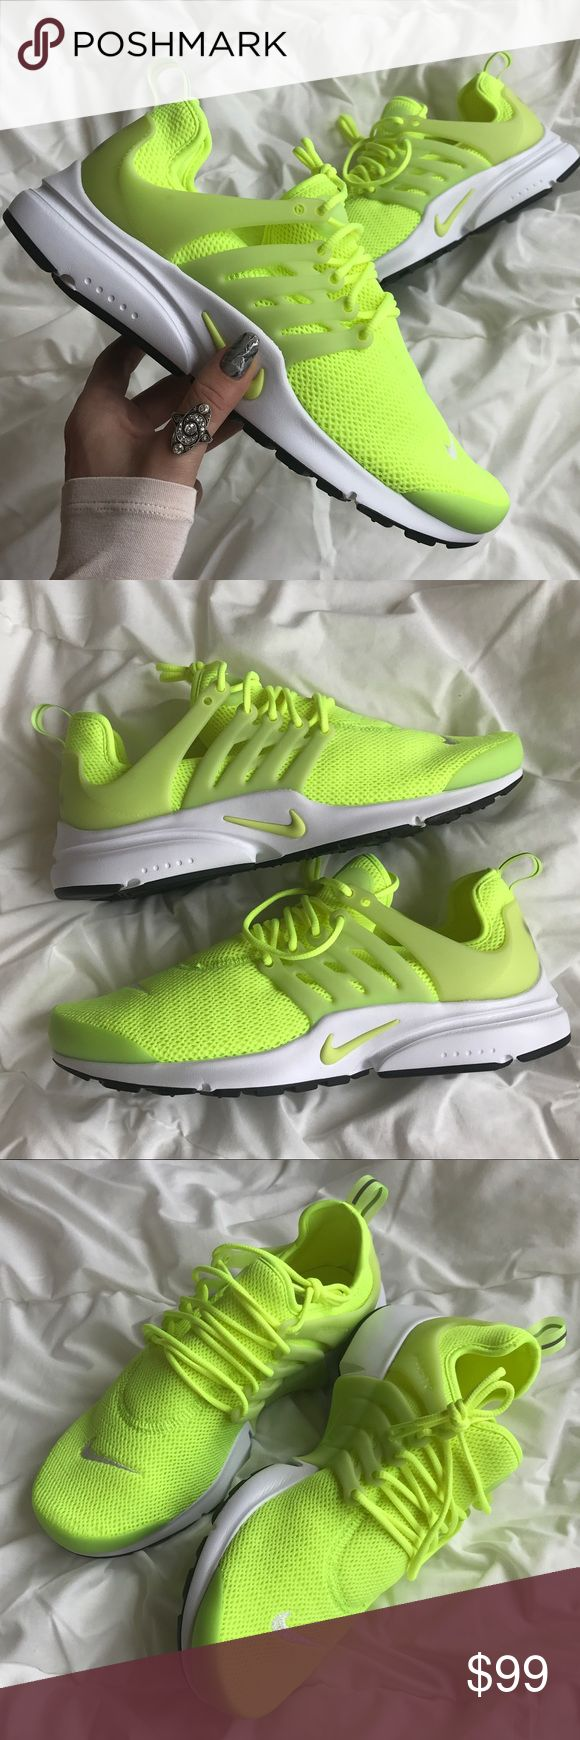 Nwt Nike Presto neon Brand new,no box lid!Price is firm!no trades!Crisp, clean and ready for the streets, a retro-futuristic runner boasts a breathable stretch-mesh upper, vibrant color and a signature molded TPU support cage. Even after 15 years, the Nike Air Presto is still turning heads. Lace-up style Removable insole Stretch-mesh upper TPU support cage Mixed treads Mesh and synthetic upper/mesh lining/rubber sole Nike Shoes Athletic Shoes